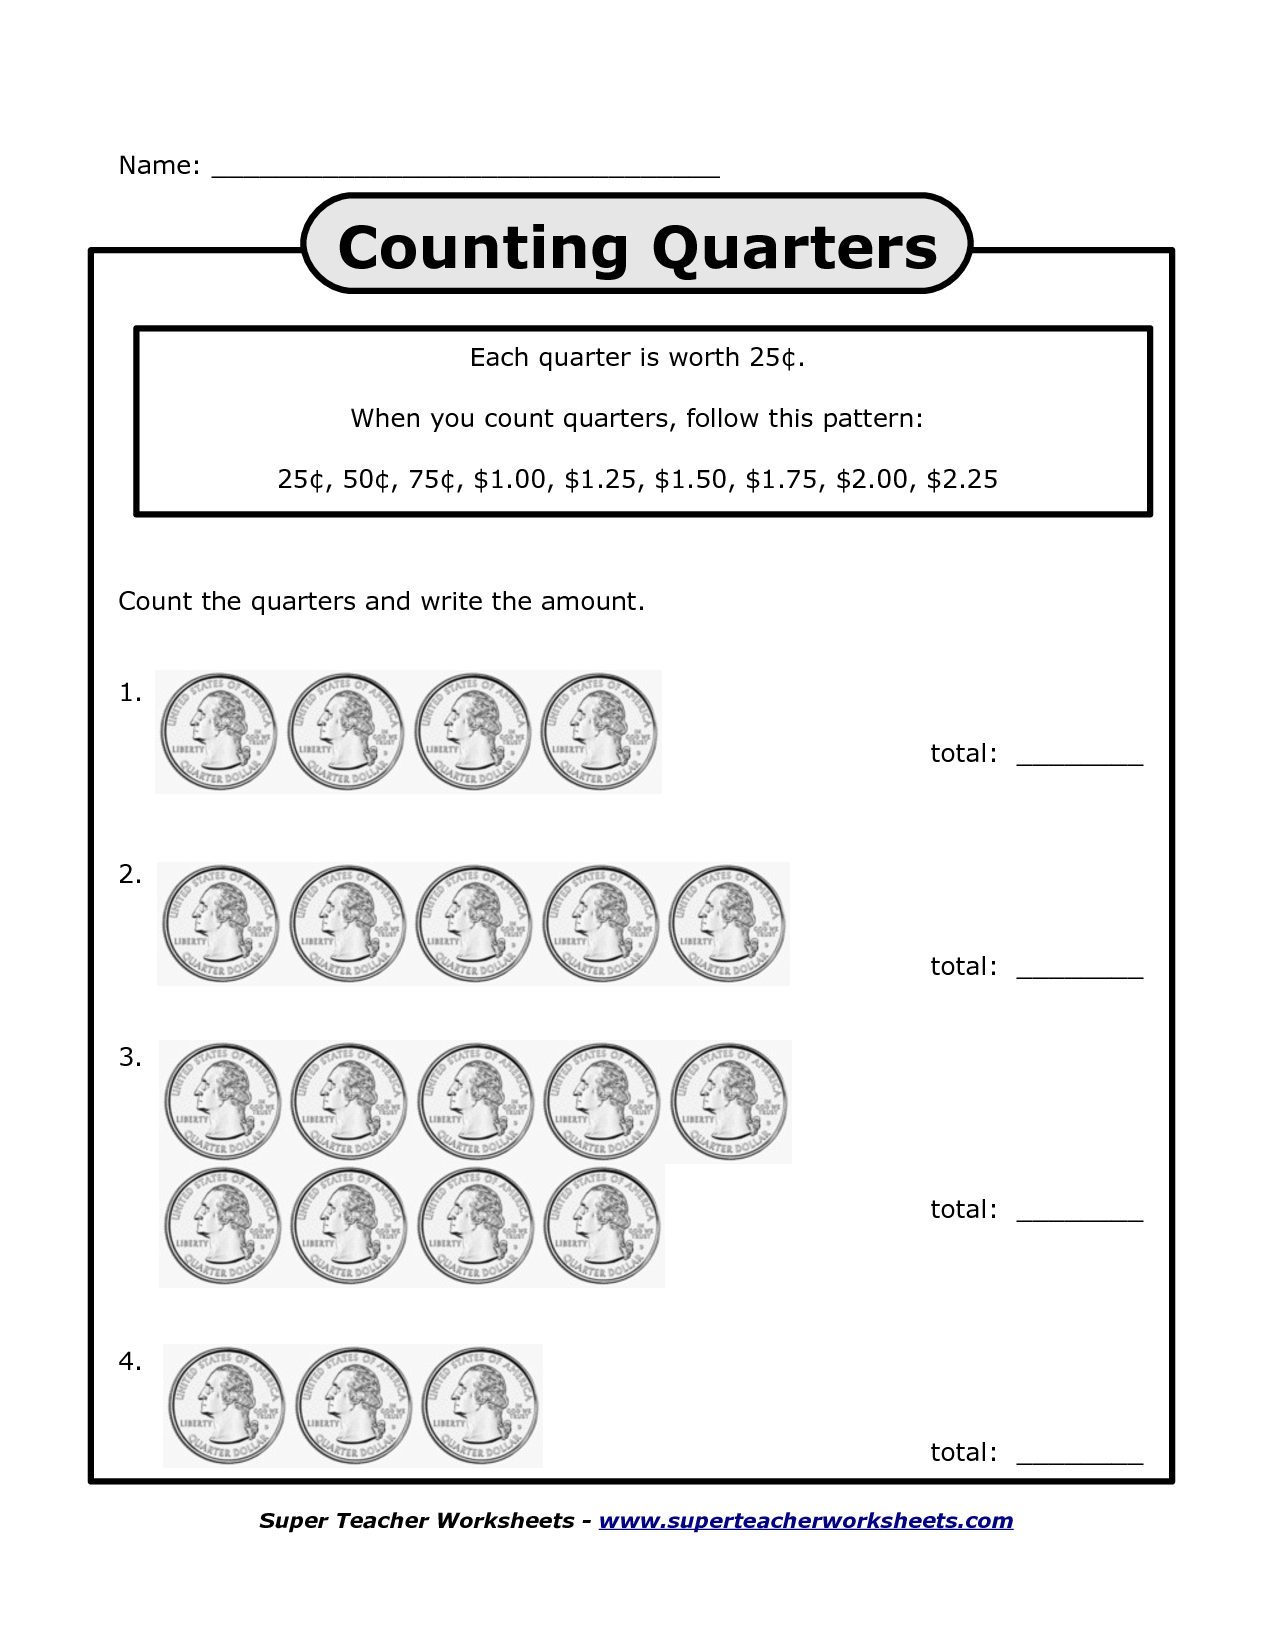 Simple worksheet practicing counting quarters – Counting Quarters Worksheet